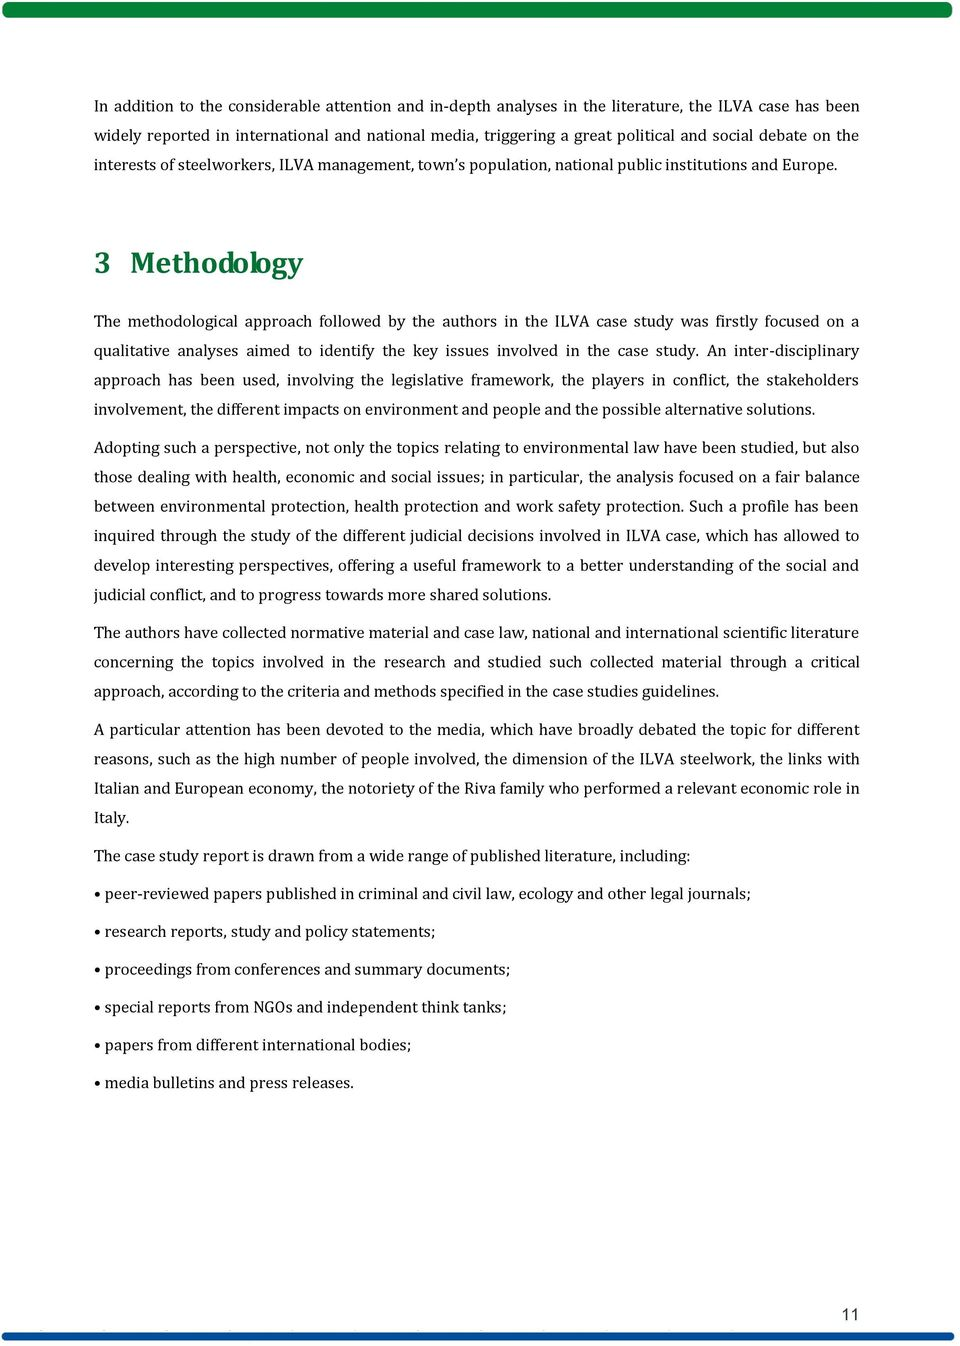 3 Methodology The methodological approach followed by the authors in the ILVA case study was firstly focused on a qualitative analyses aimed to identify the key issues involved in the case study.